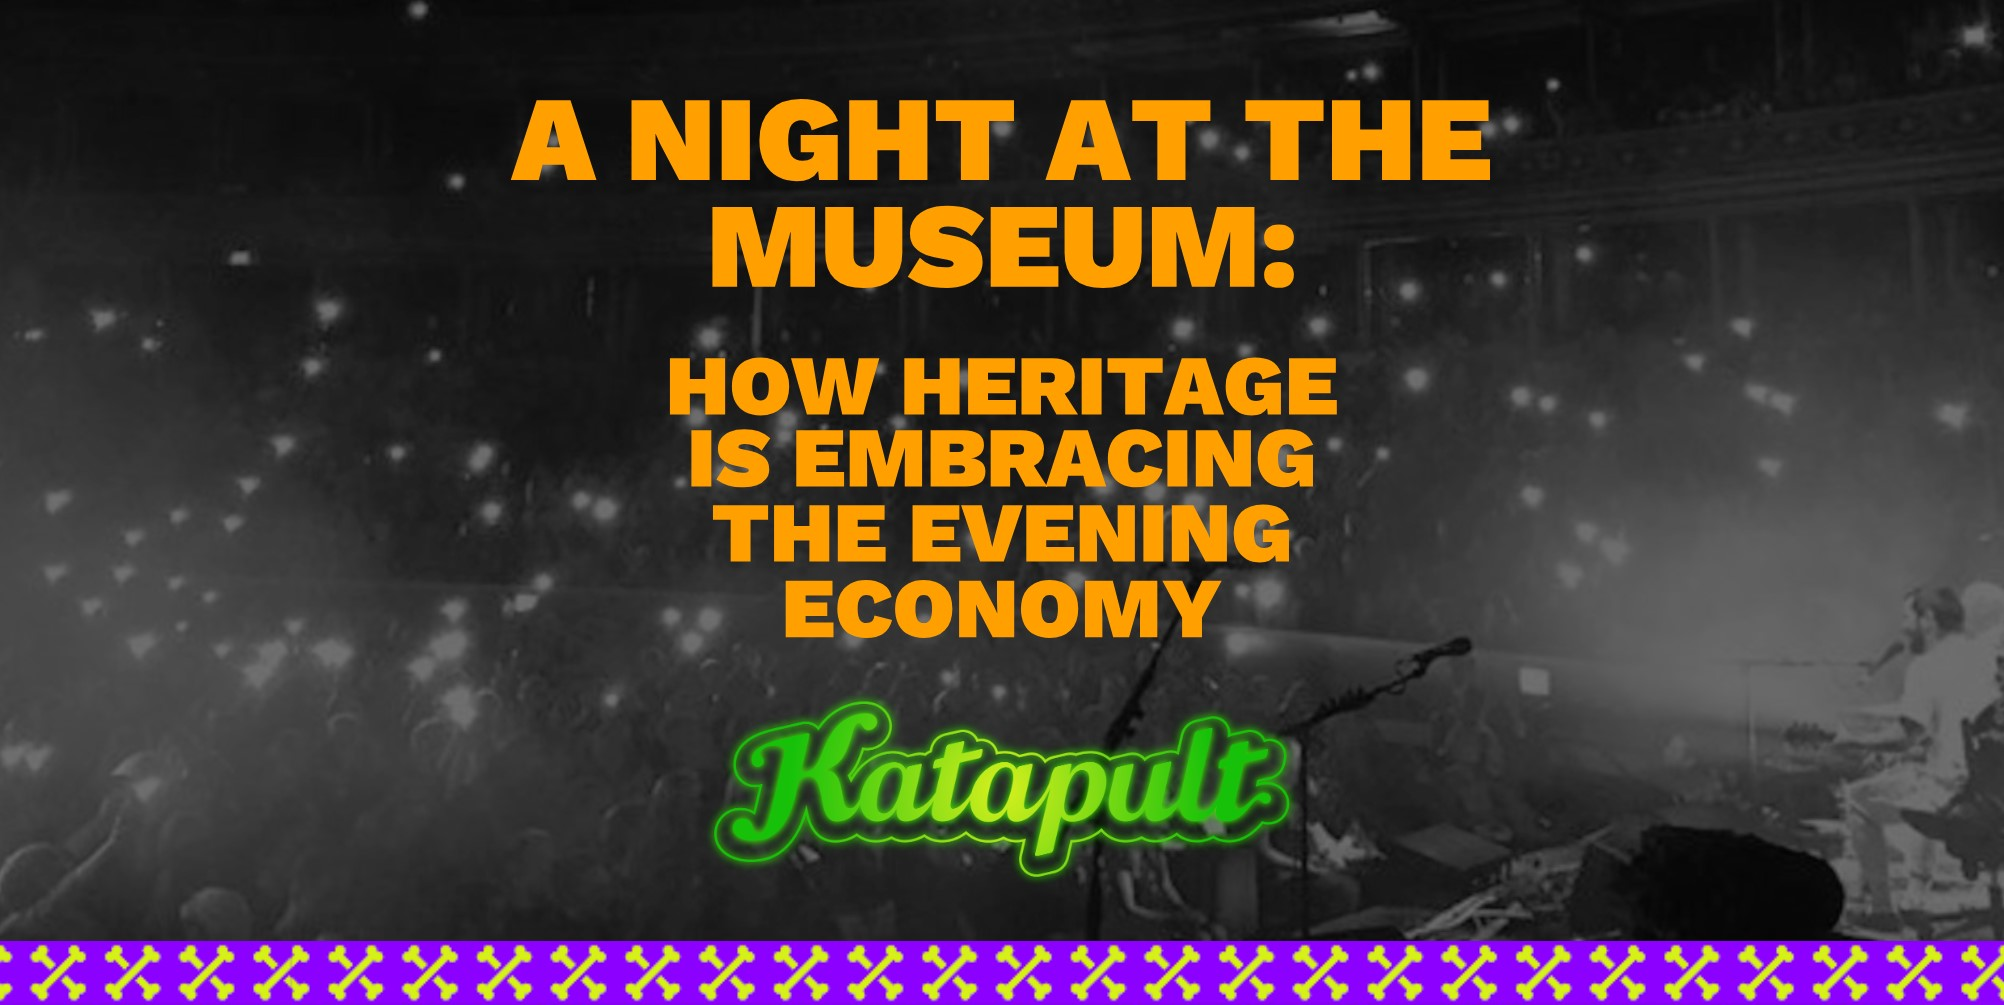 A night at the museum: how heritage is embracing the evening economy